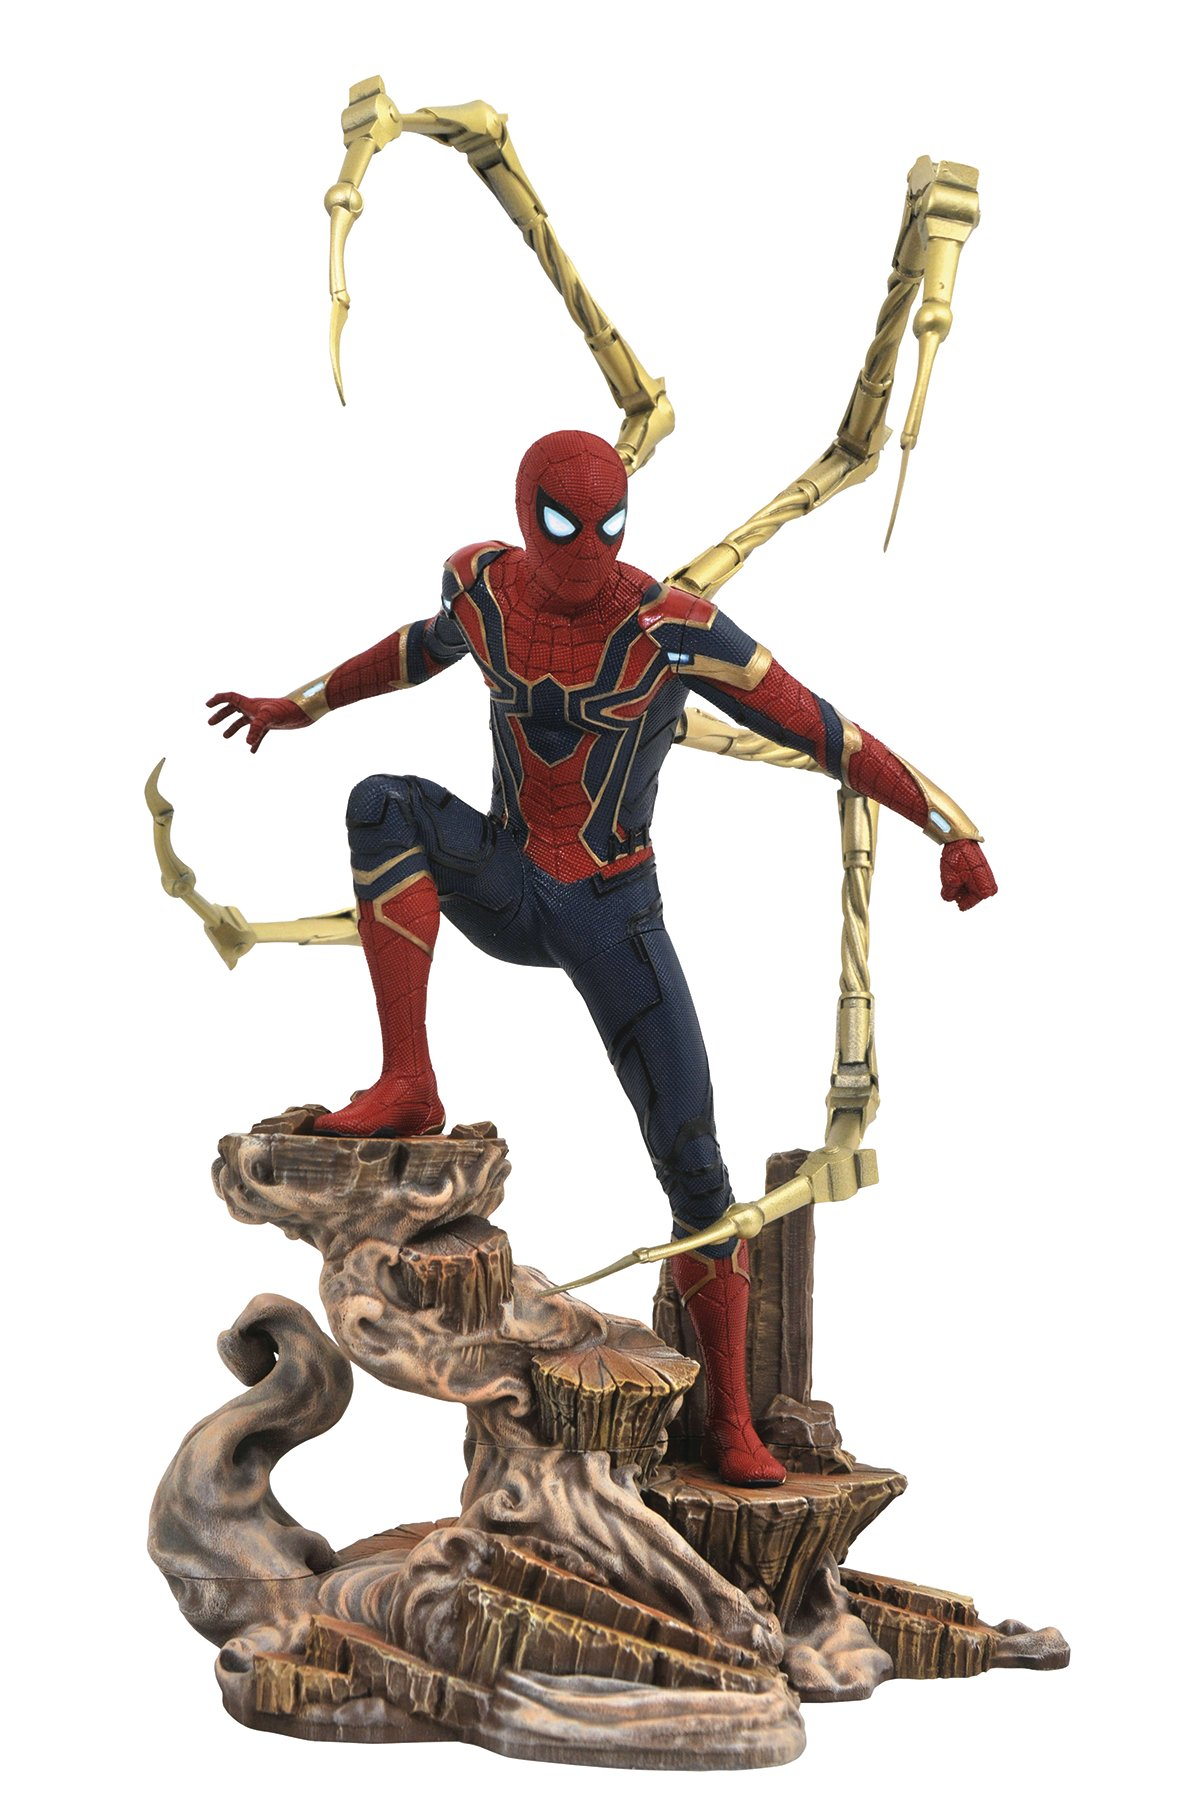 DIAMOND SELECT TOYS Marvel Gallery: Avengers Infinity War Movie Spiderman PVC Figure